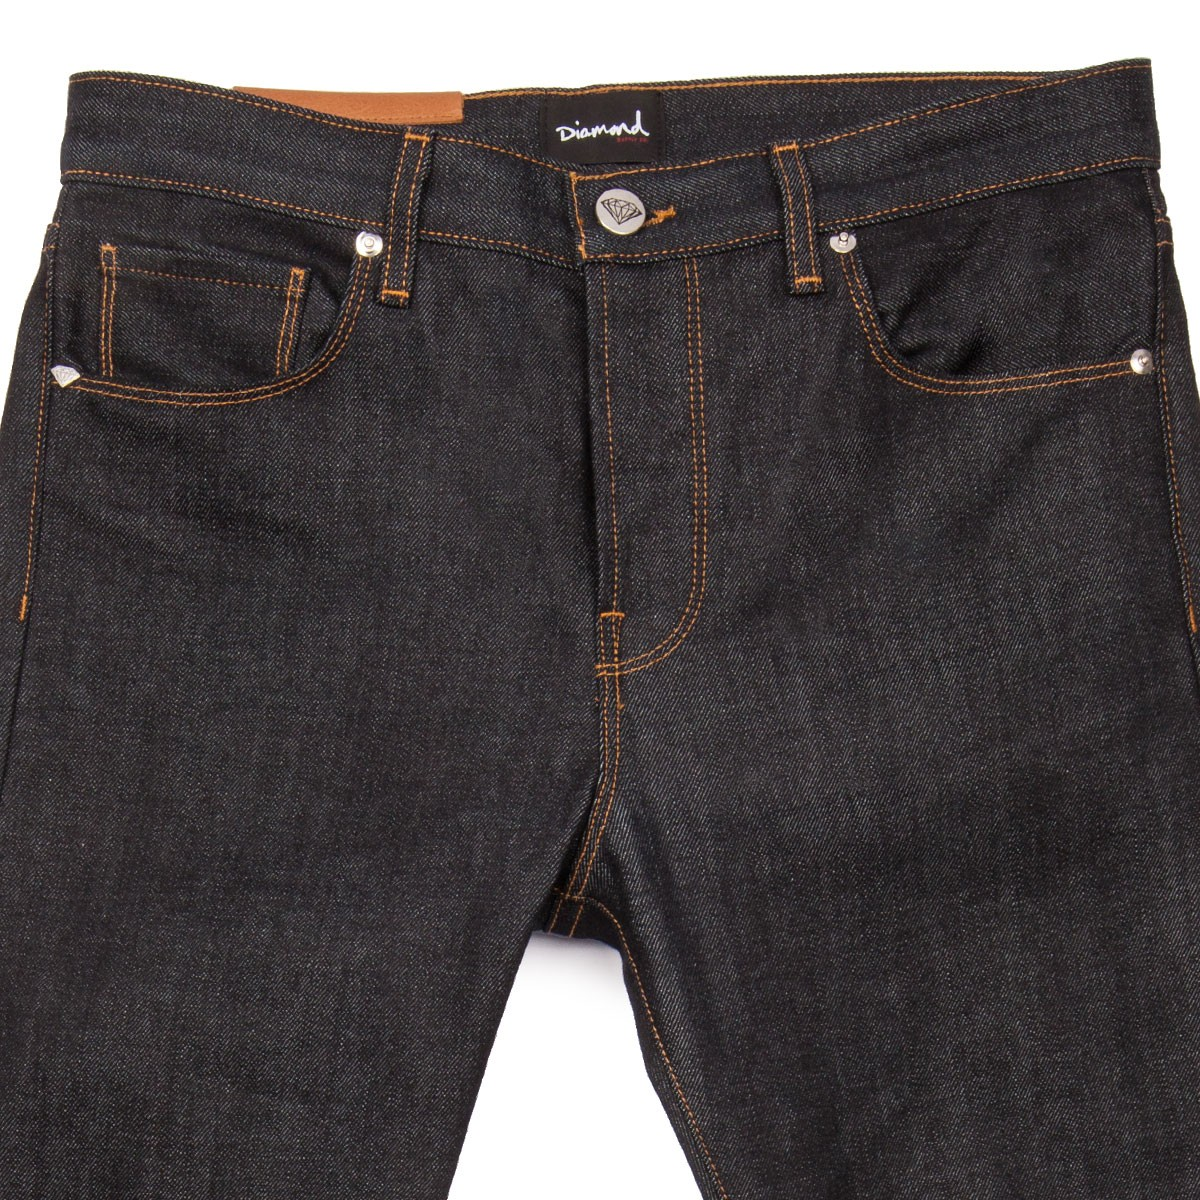 Dark denim slim fit jeans